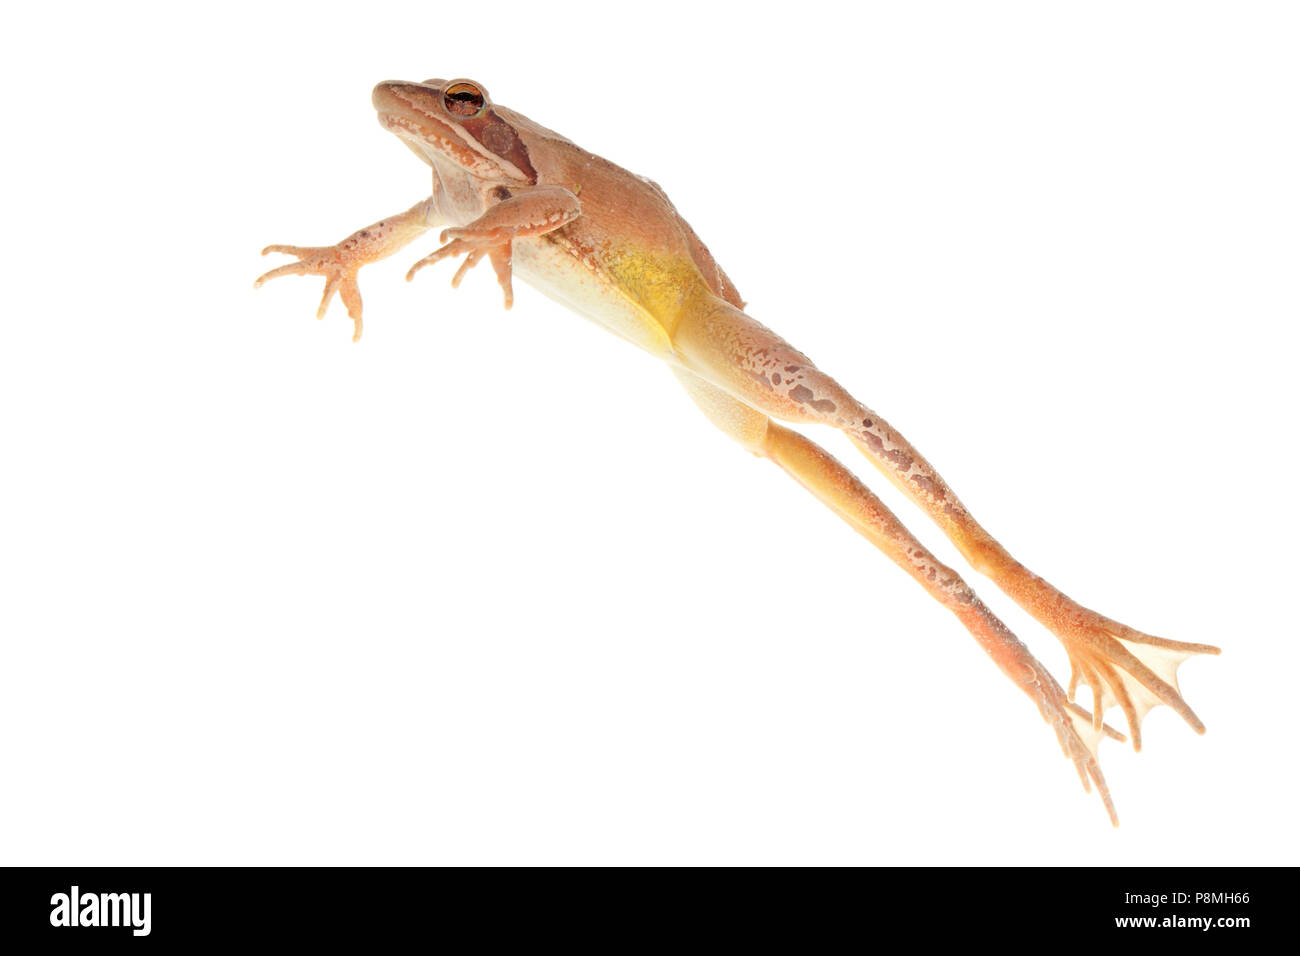 jumping agile frog isolated against a white background - Stock Image